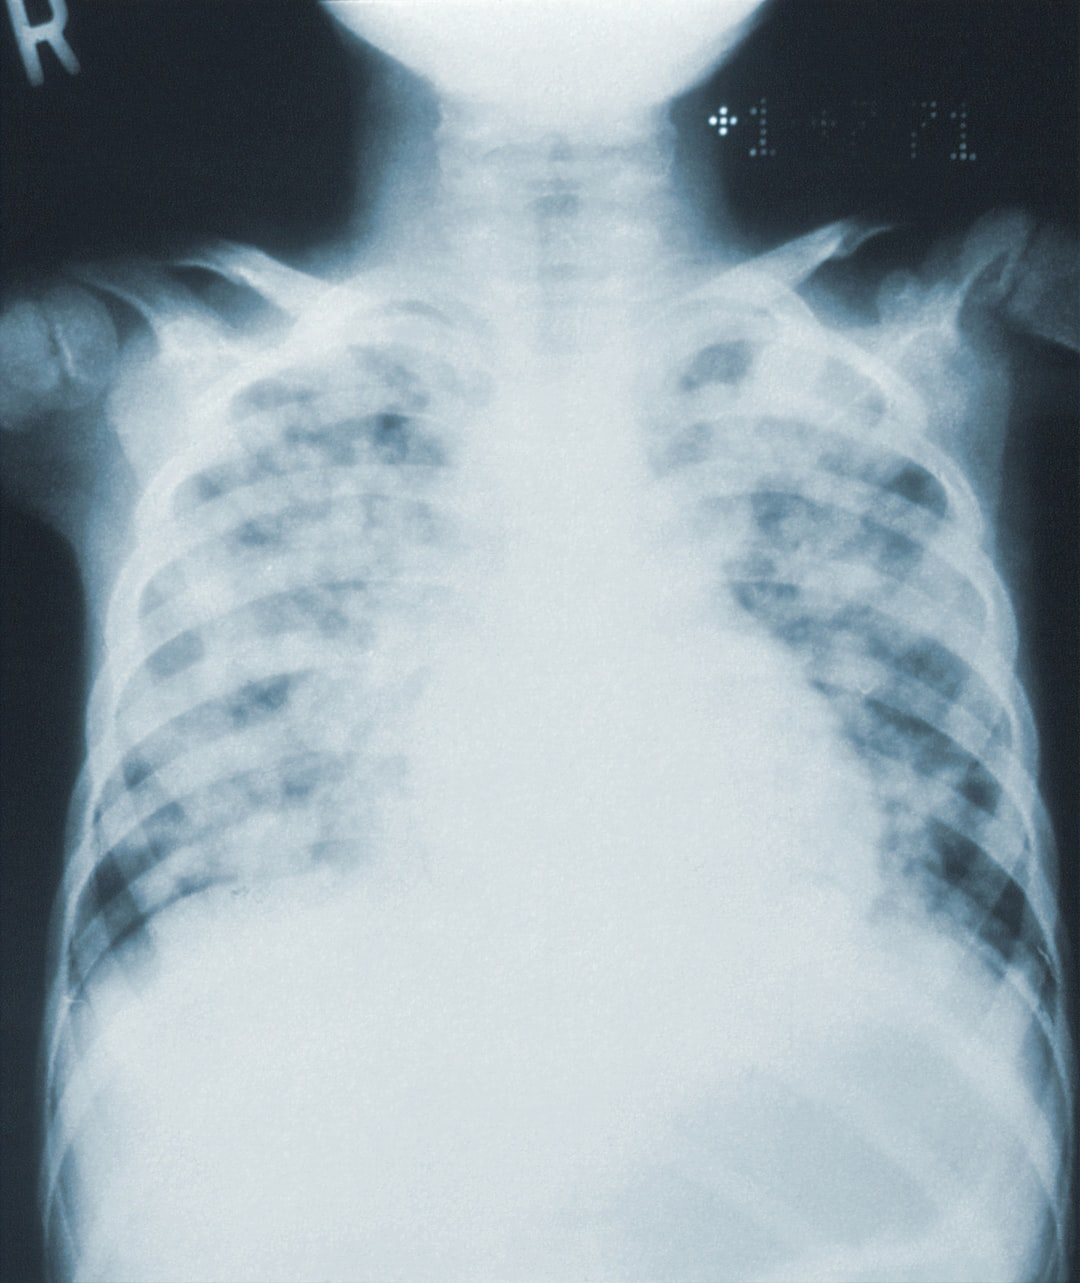 X-ray showing Pneumonia